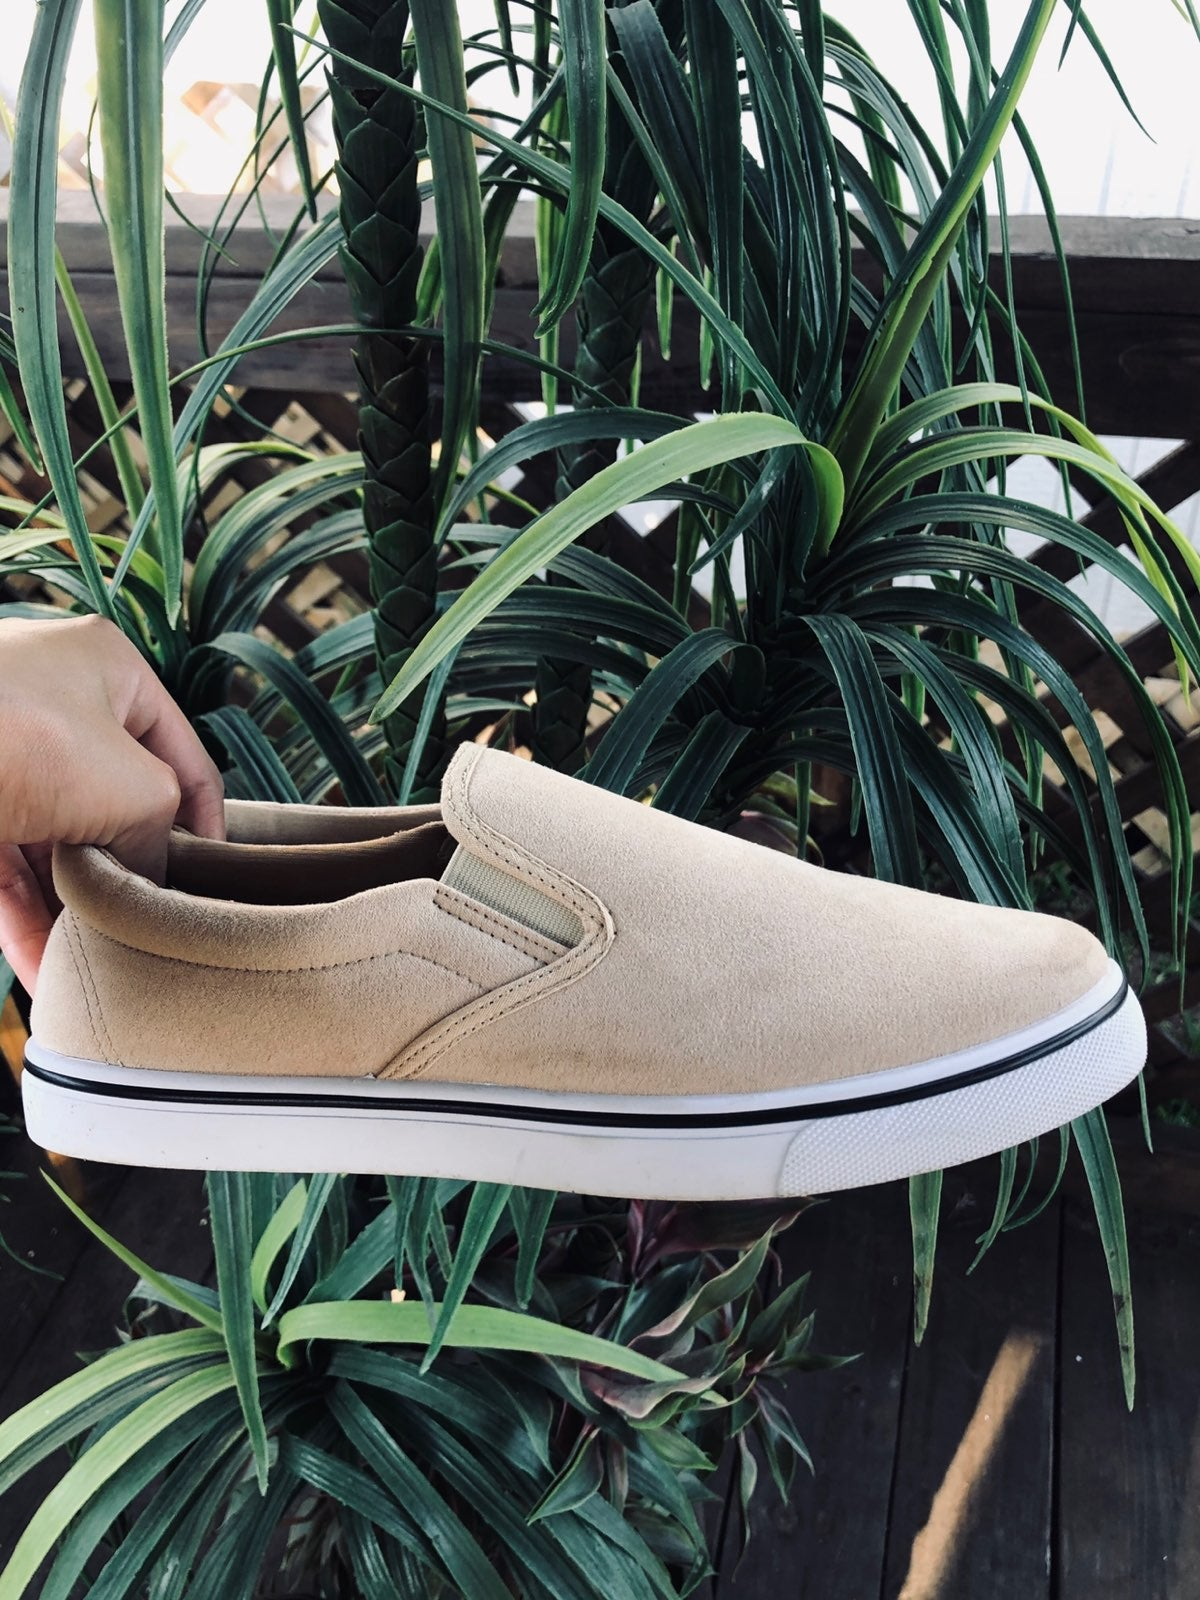 Tan slip on shoe